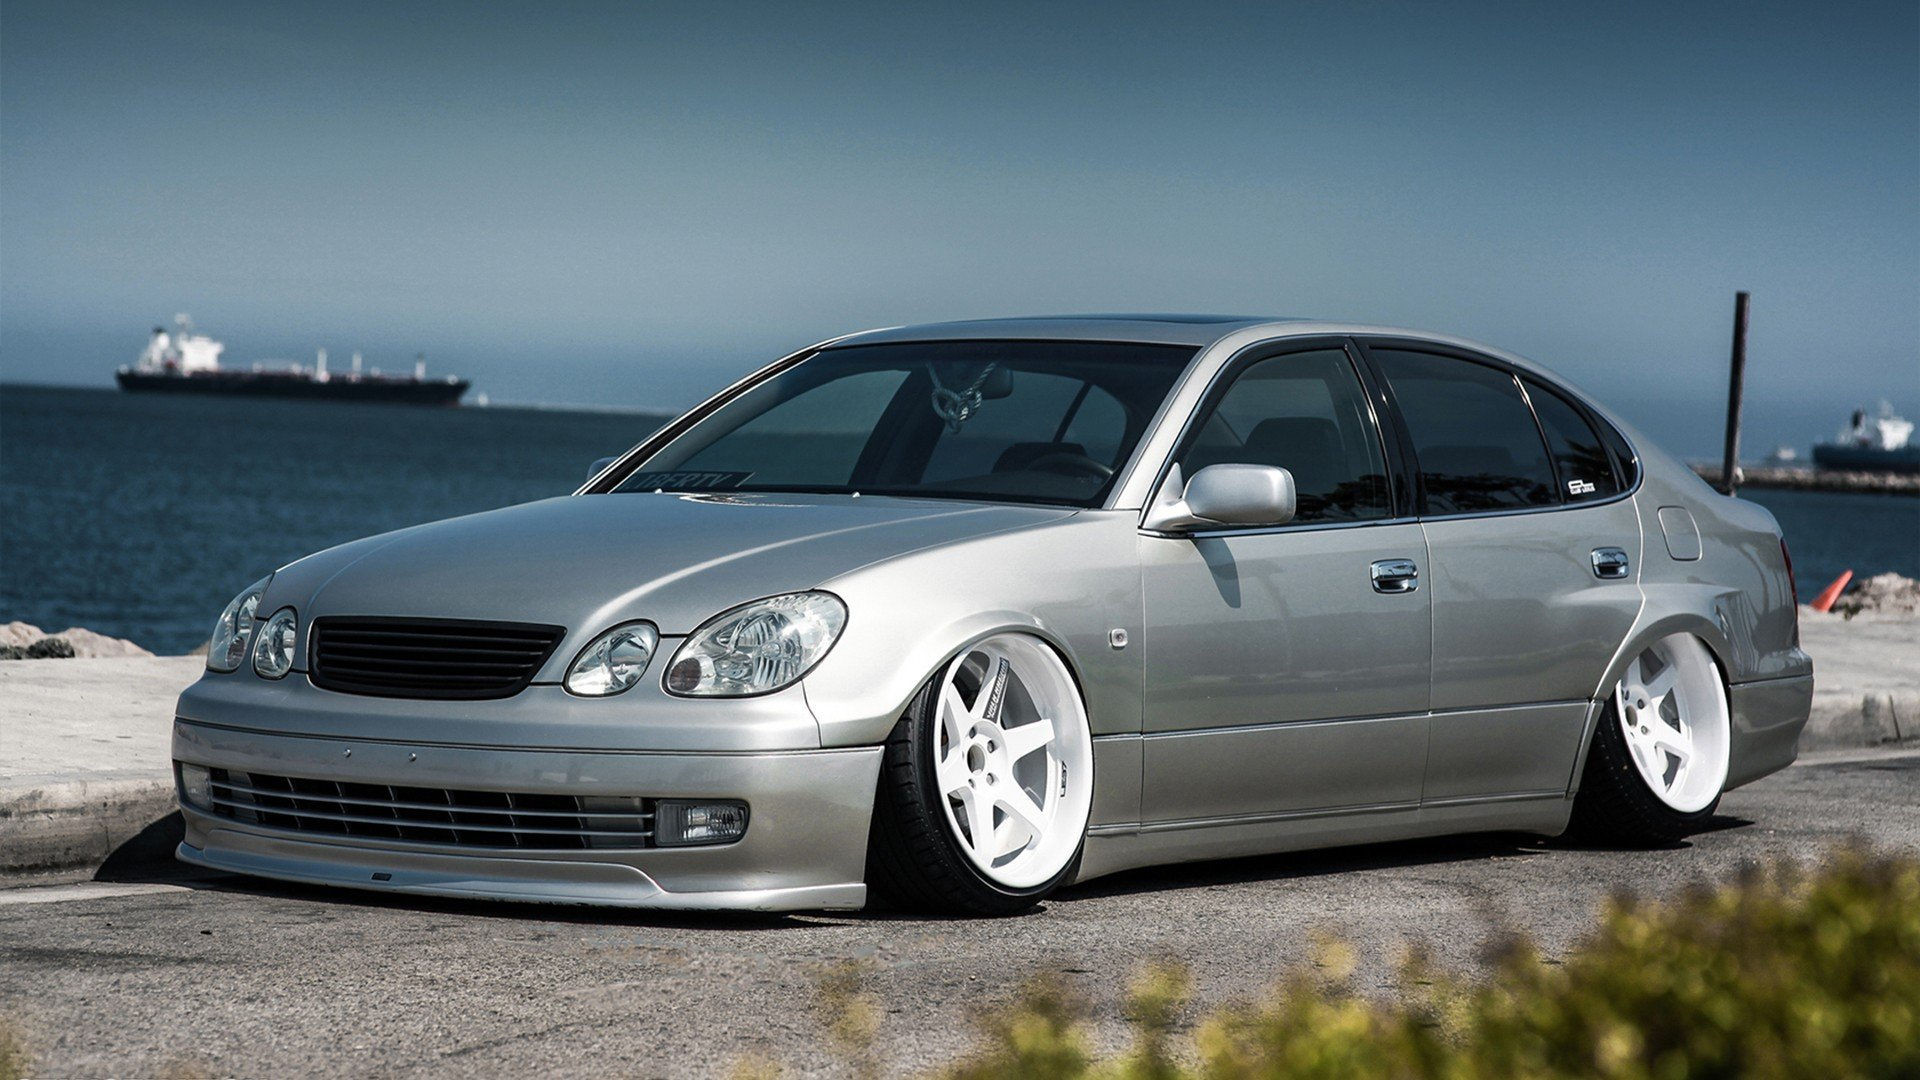 Cars Lexus GS300 Slammed Lexus GS wallpaper 1920x1080 319487 1920x1080